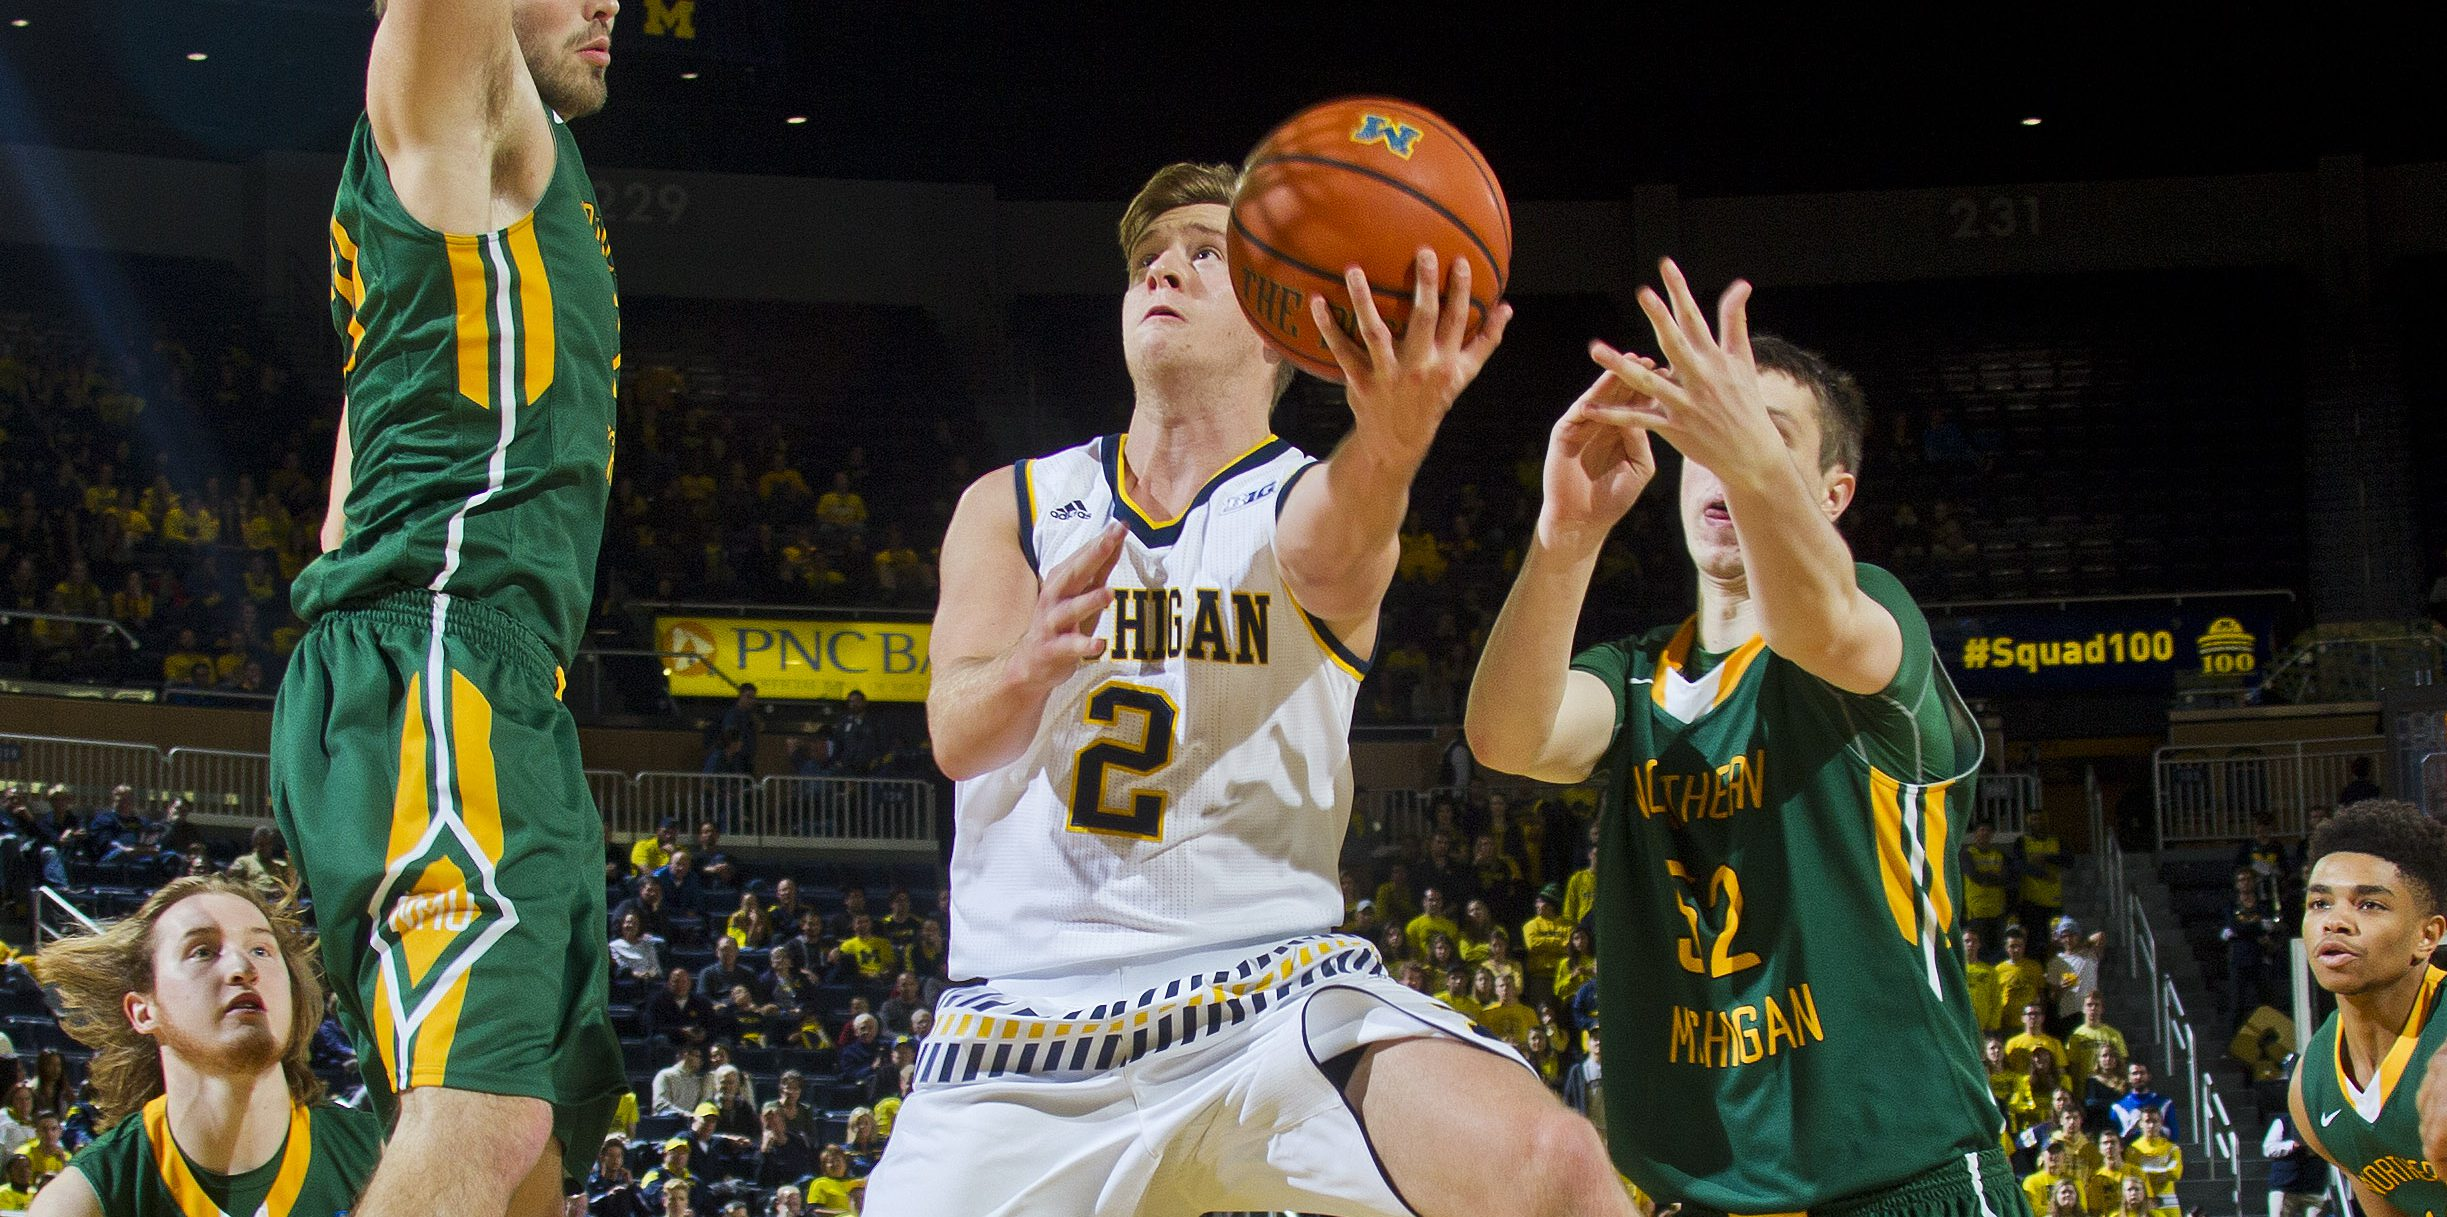 Michigan guard Spike Albrecht (2) makes a layup between Northern Michigan forward Brett Branstrom, top left, and center Vejas Grazulis (52) in the second half of an NCAA college basketball game at Crisler Center in Ann Arbor, Mich., Friday, Nov. 13, 2015. Michigan won 70-44. (AP Photo/Tony Ding)